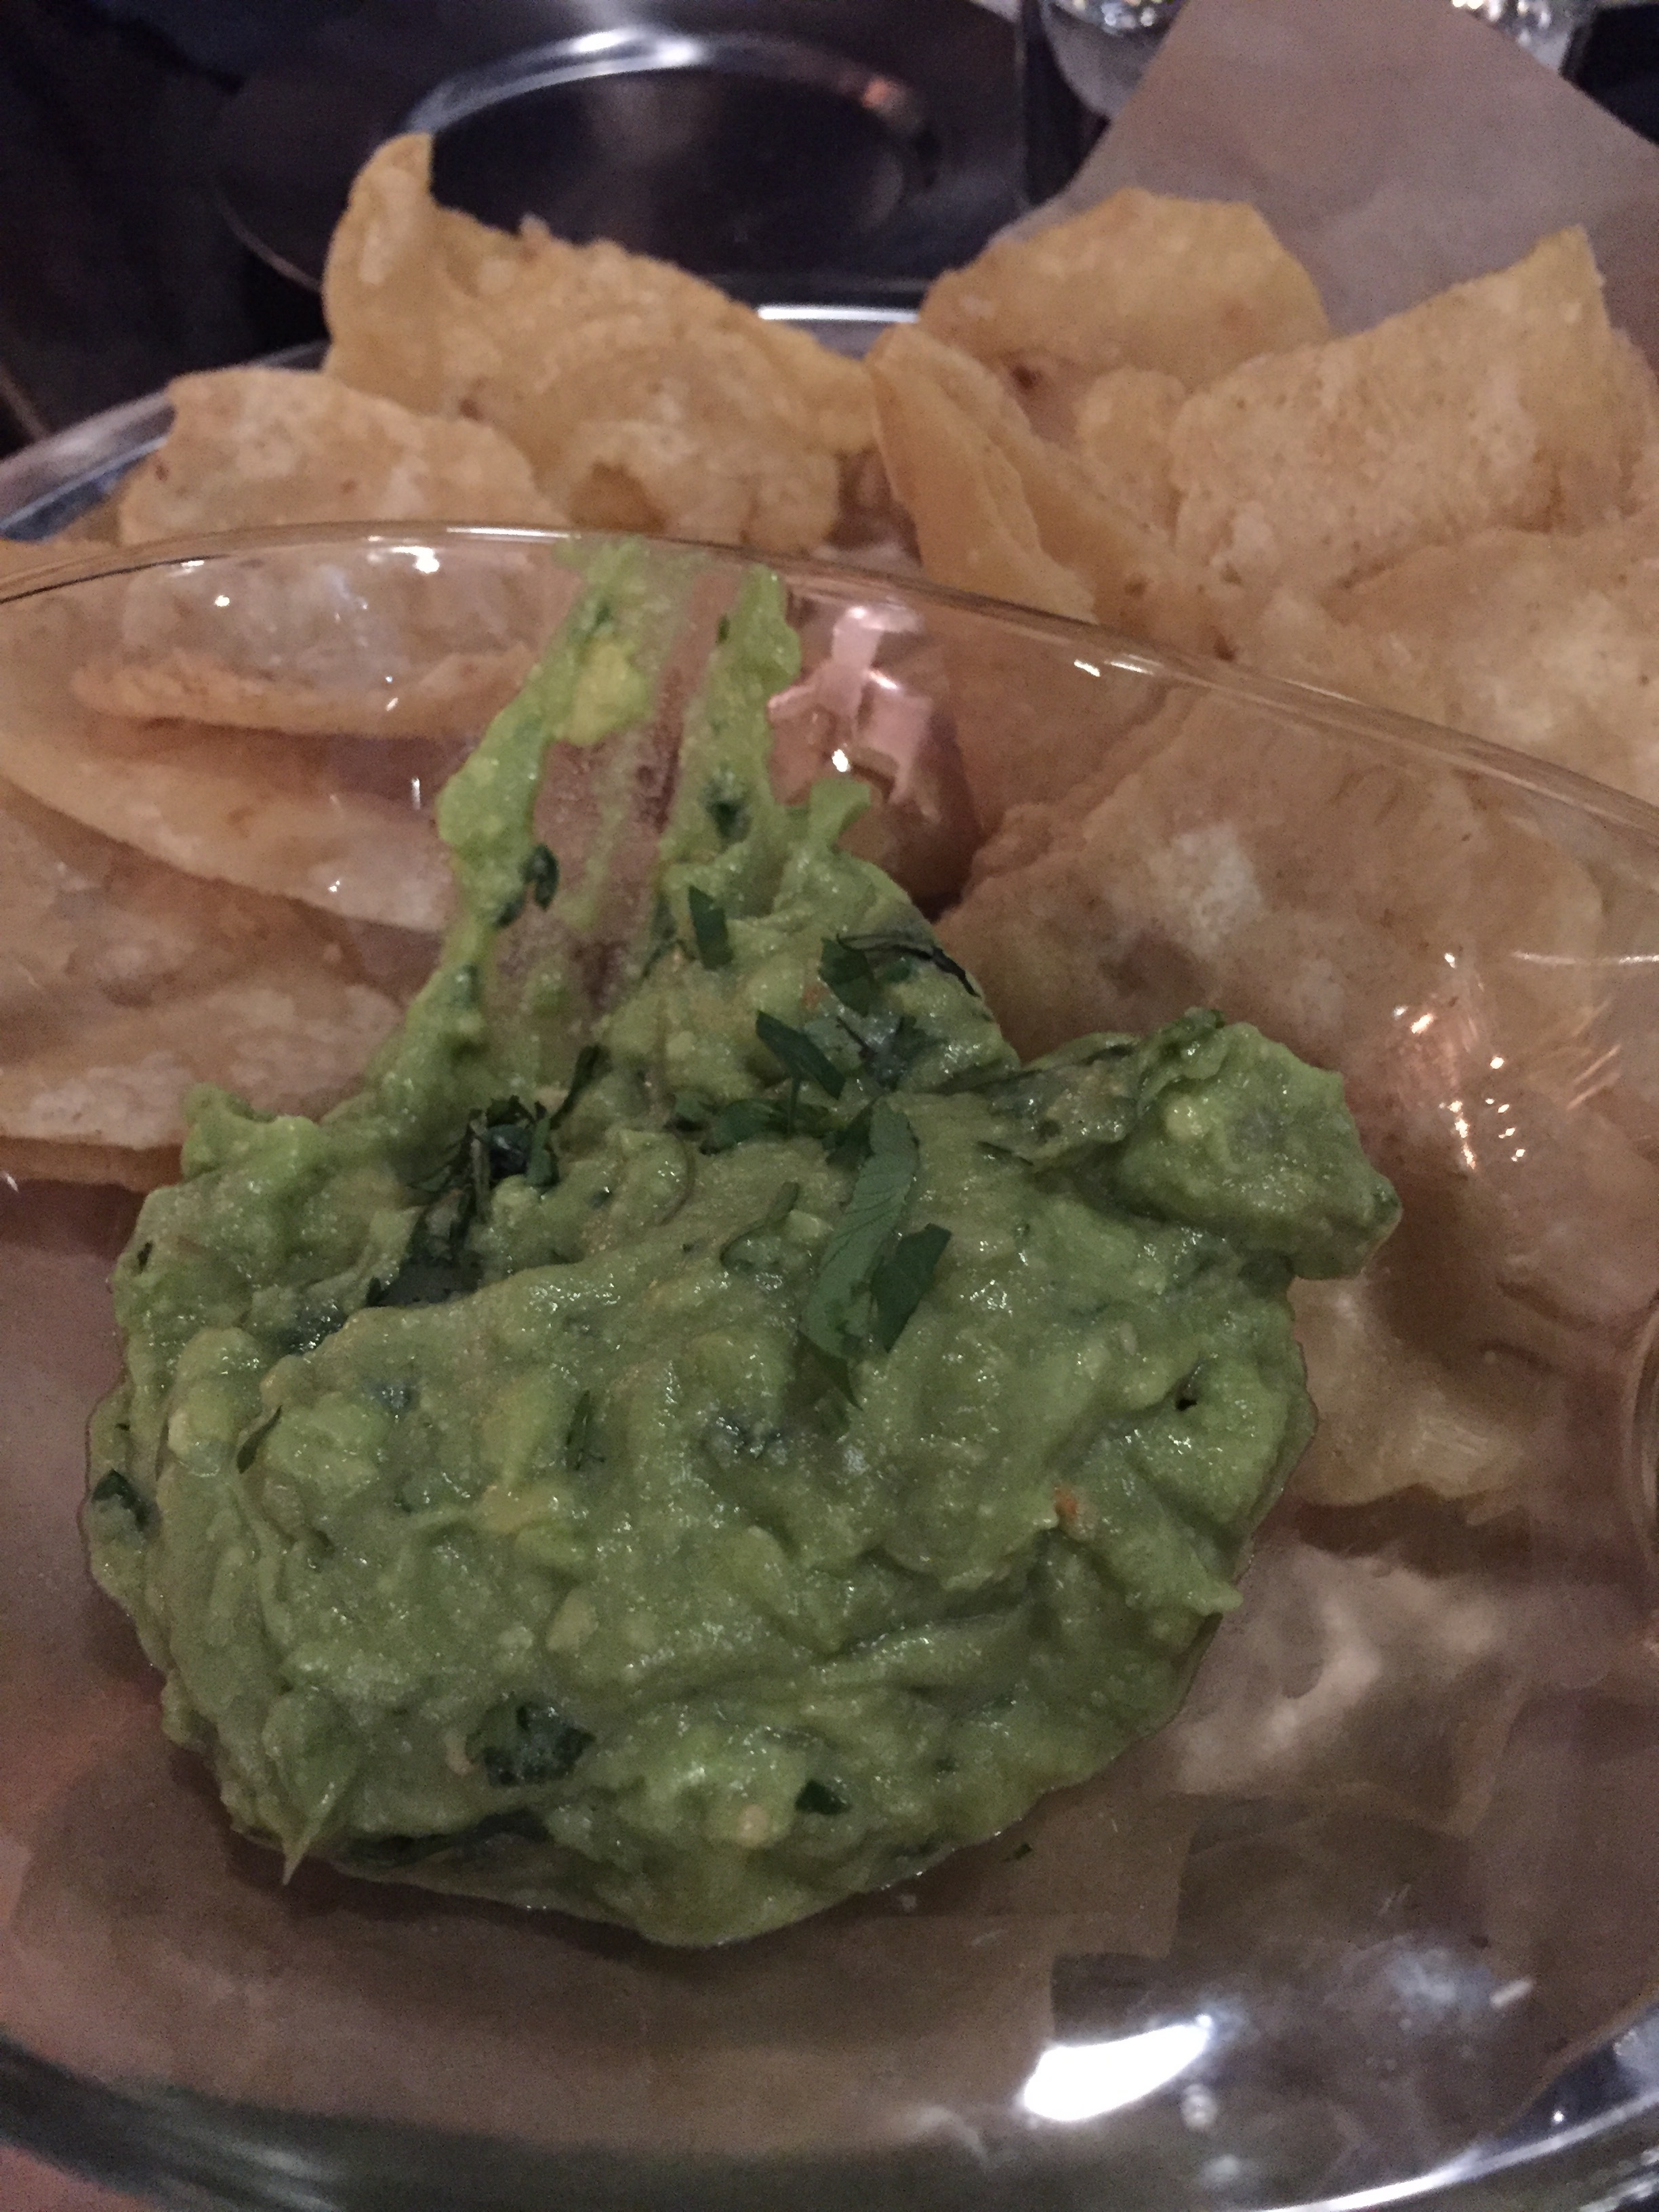 Chewy chips & guac